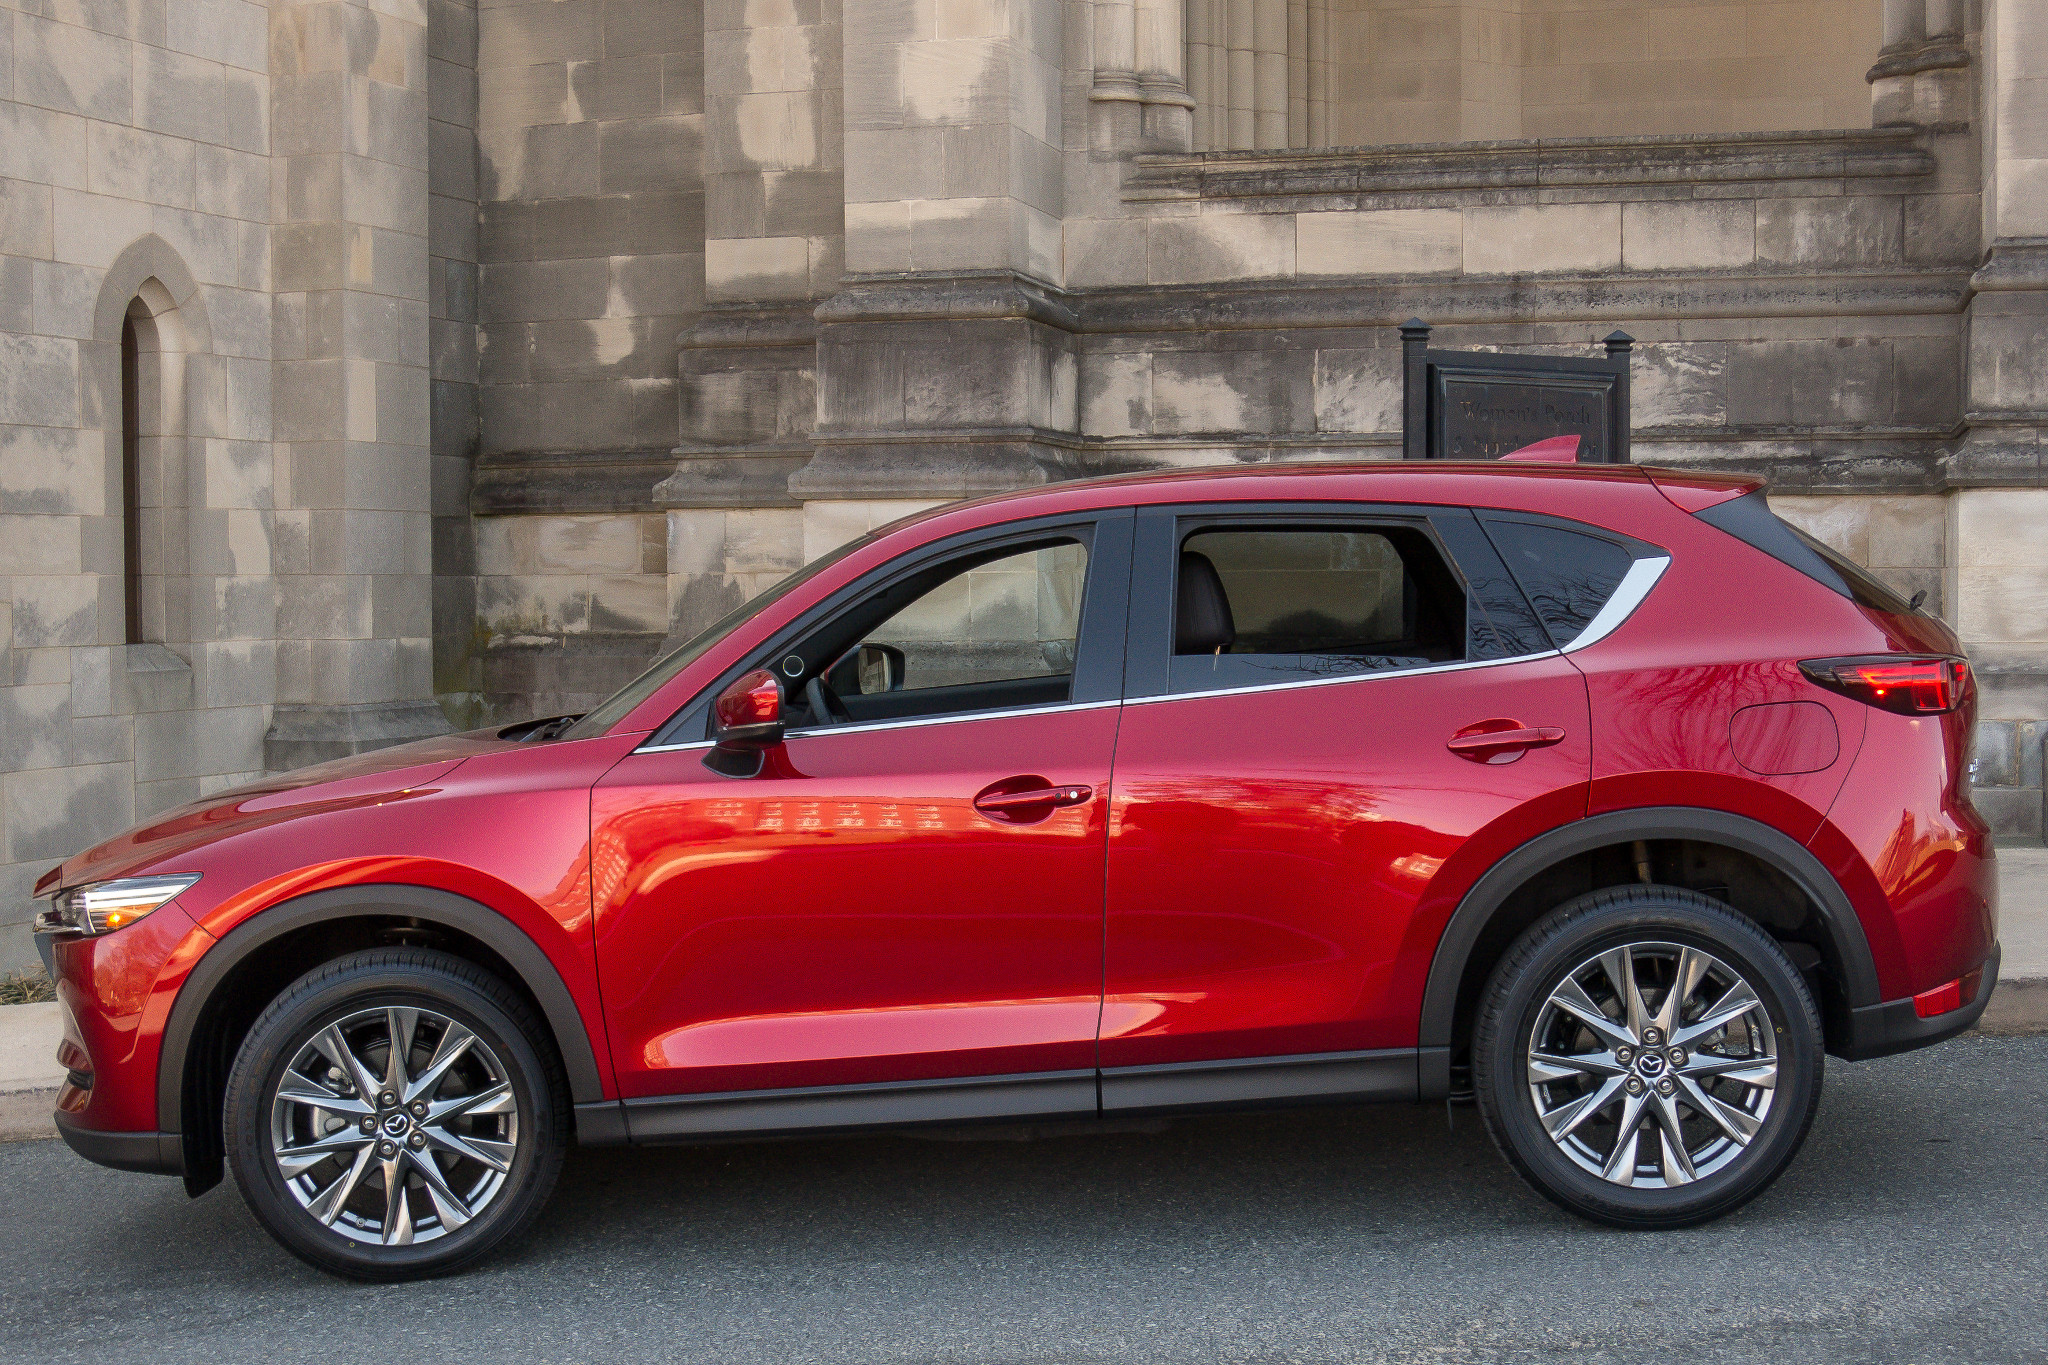 Mazda Cx 5 Gas Mileage >> 2019 Mazda Cx 5 10 Things We Like And 4 Not So Much